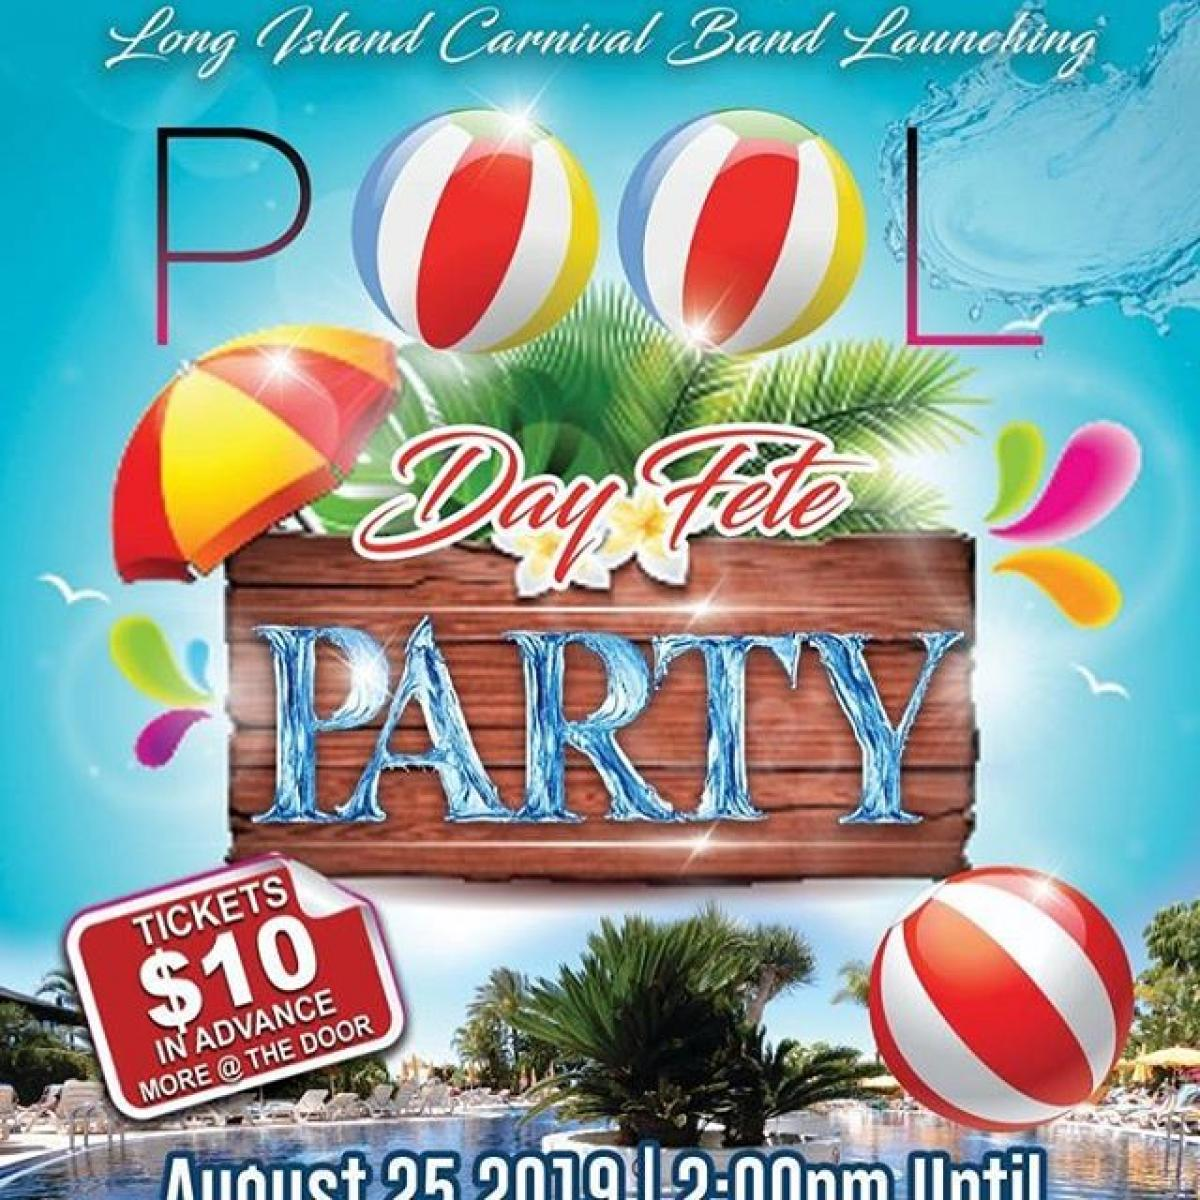 Pool Party Day Fete flyer or graphic.